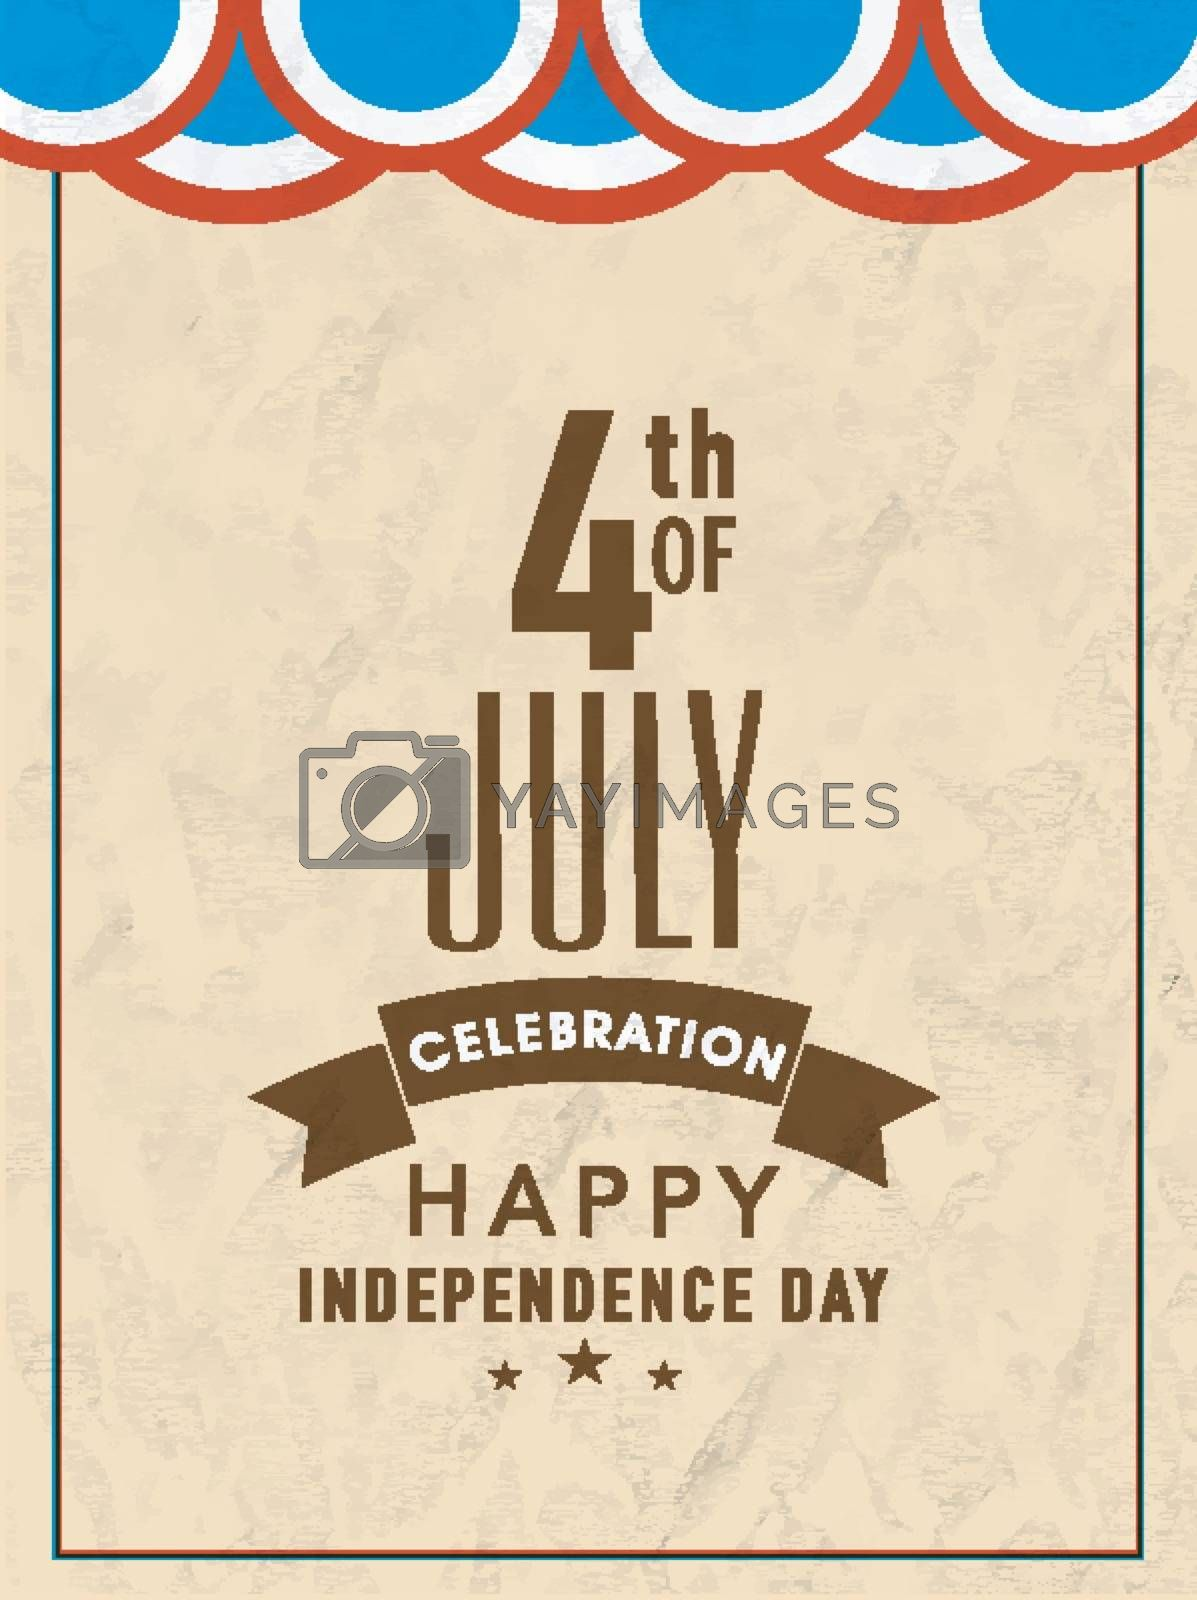 Vintage Template, Banner or Flyer design for 4th of July, Happy American Independence Day celebration.